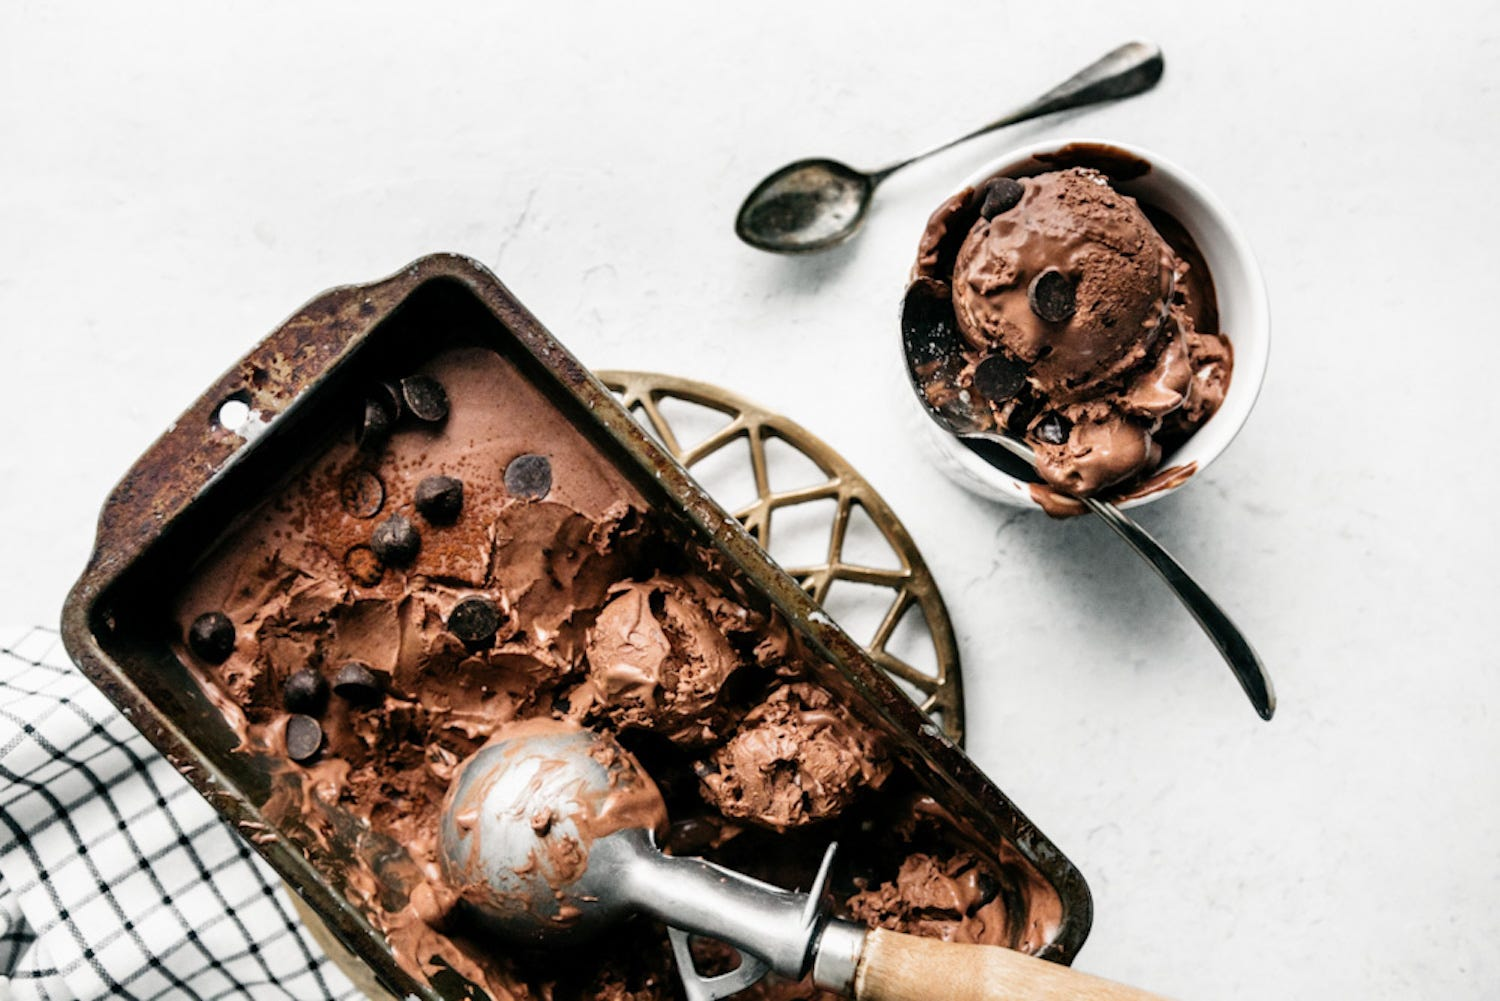 A tray of chocolate chip ice cream with a scoop in it, with a bowl of ice cream next to it